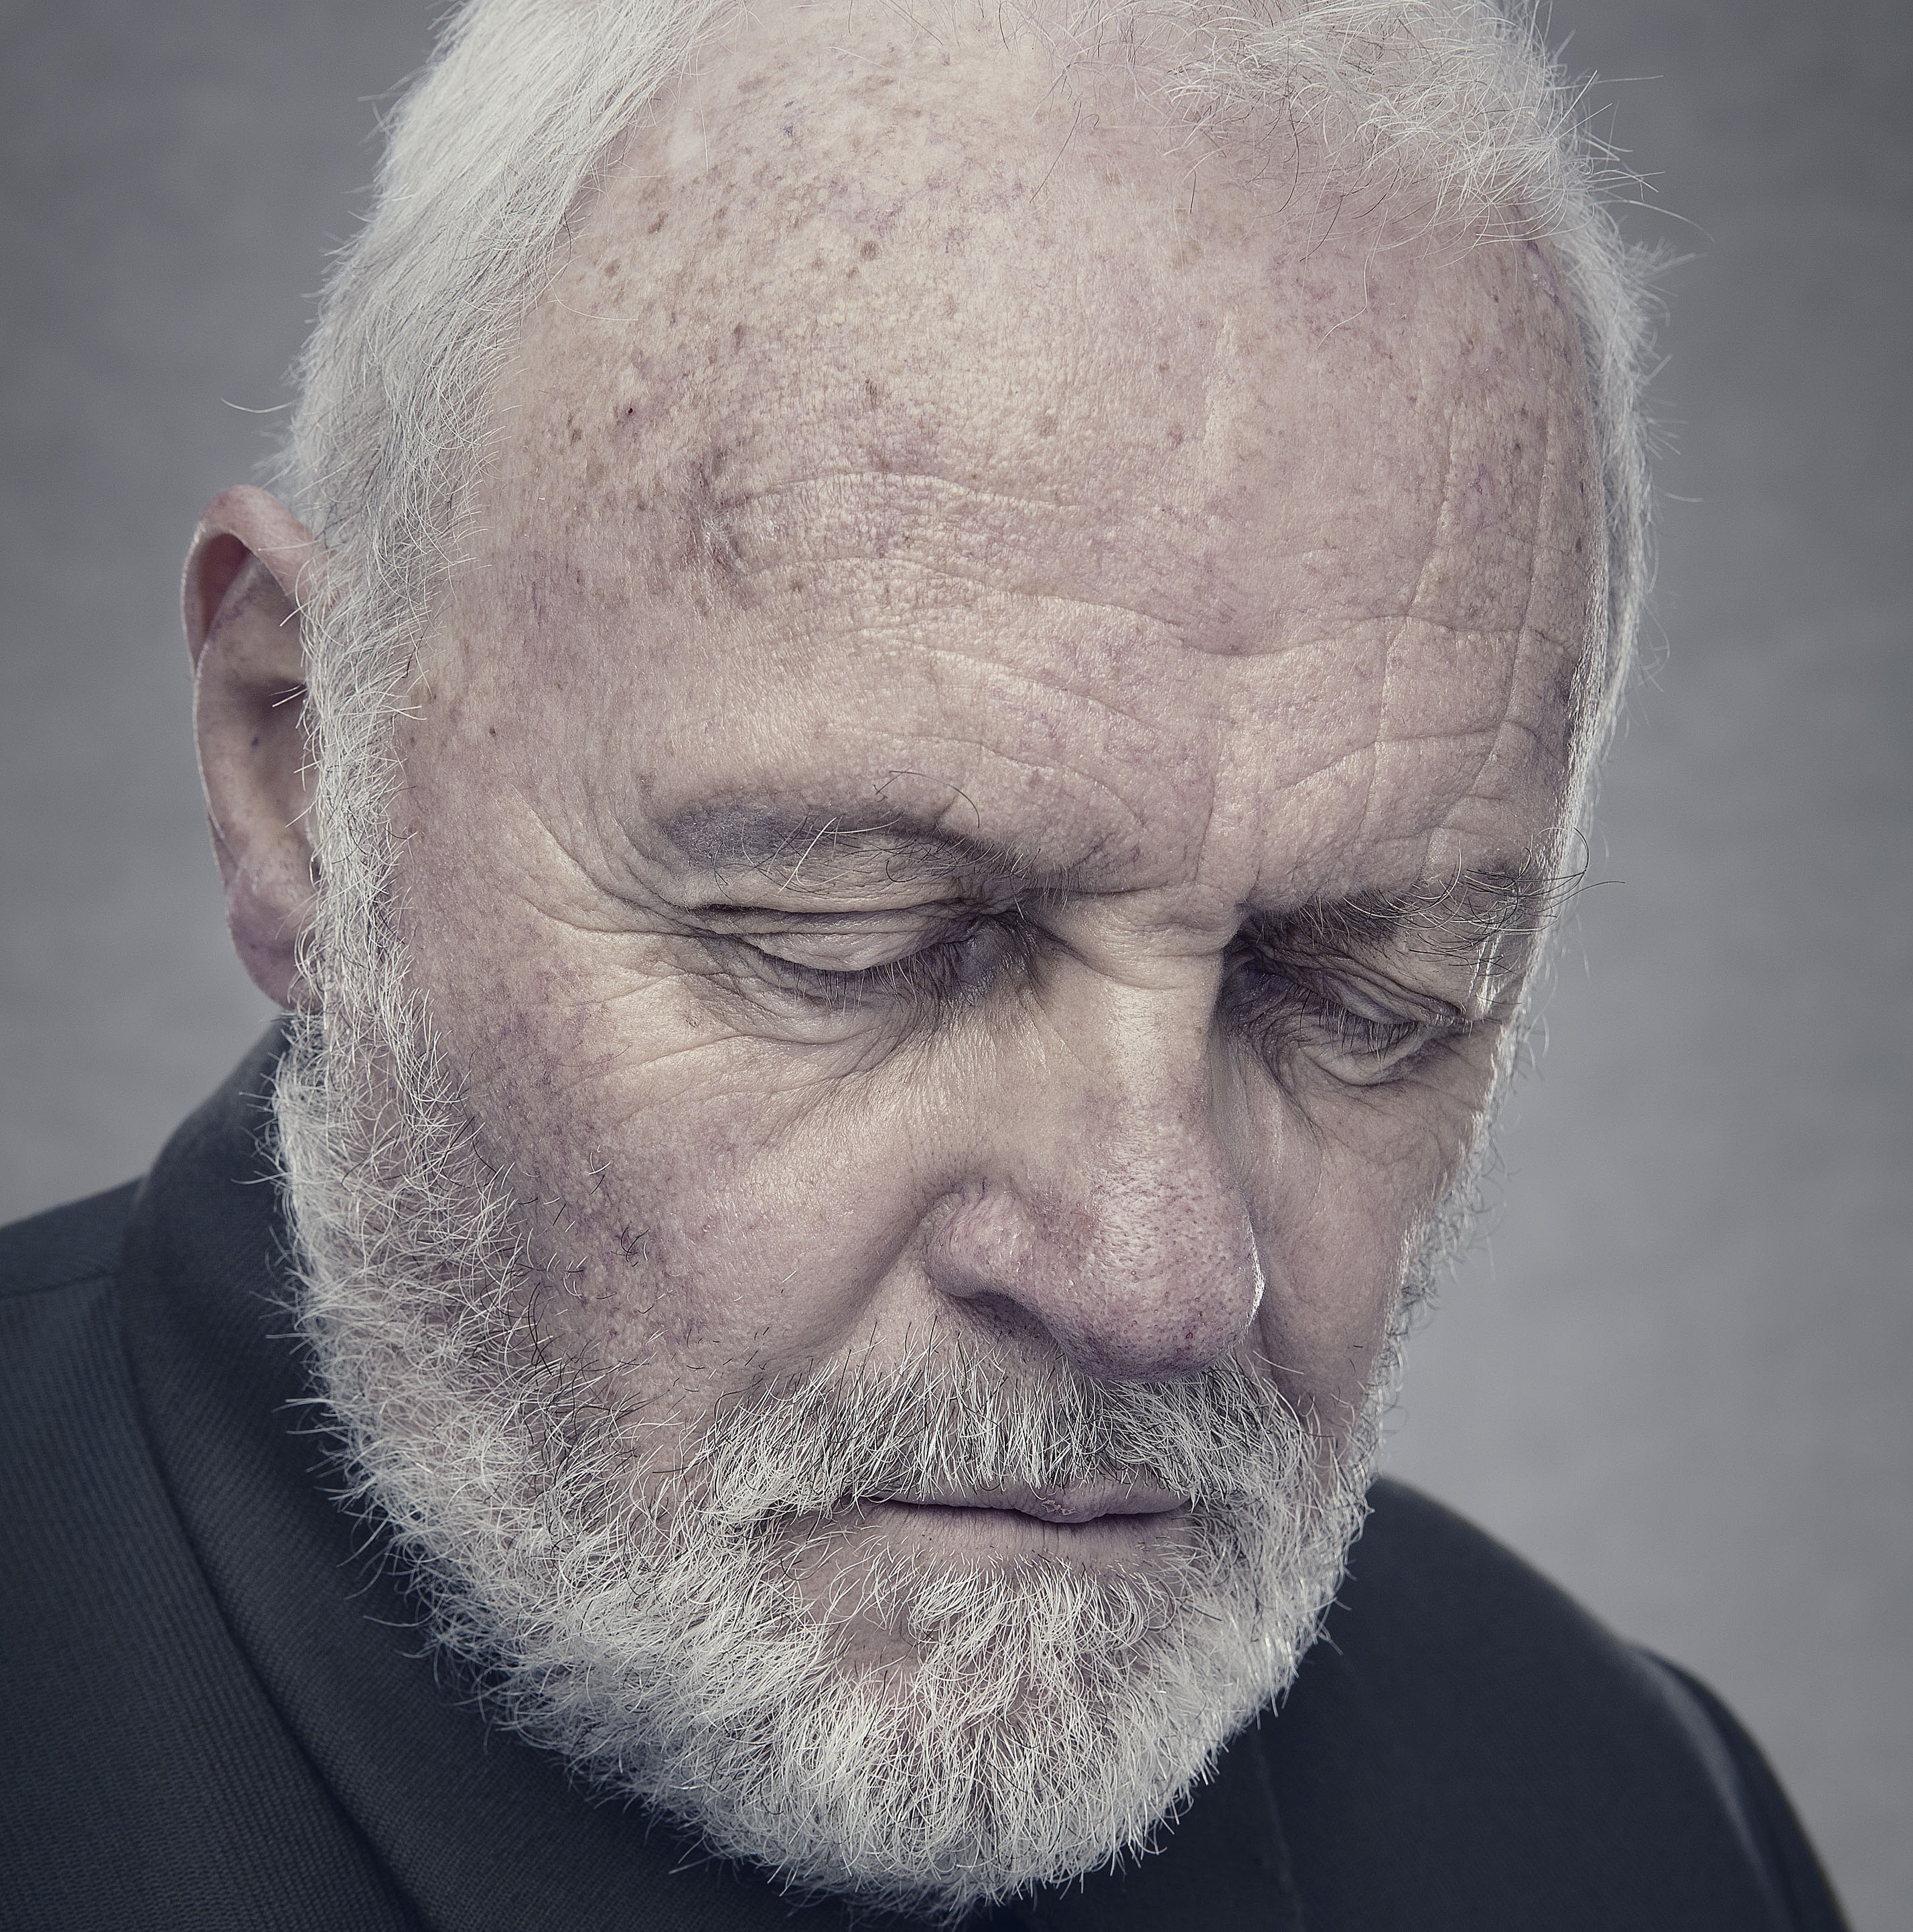 Sir Anthony Hopkins as King Lear in the BBC Two adaptation of King Lear (detail). BBC/Playground Entertainment/Ed Miller